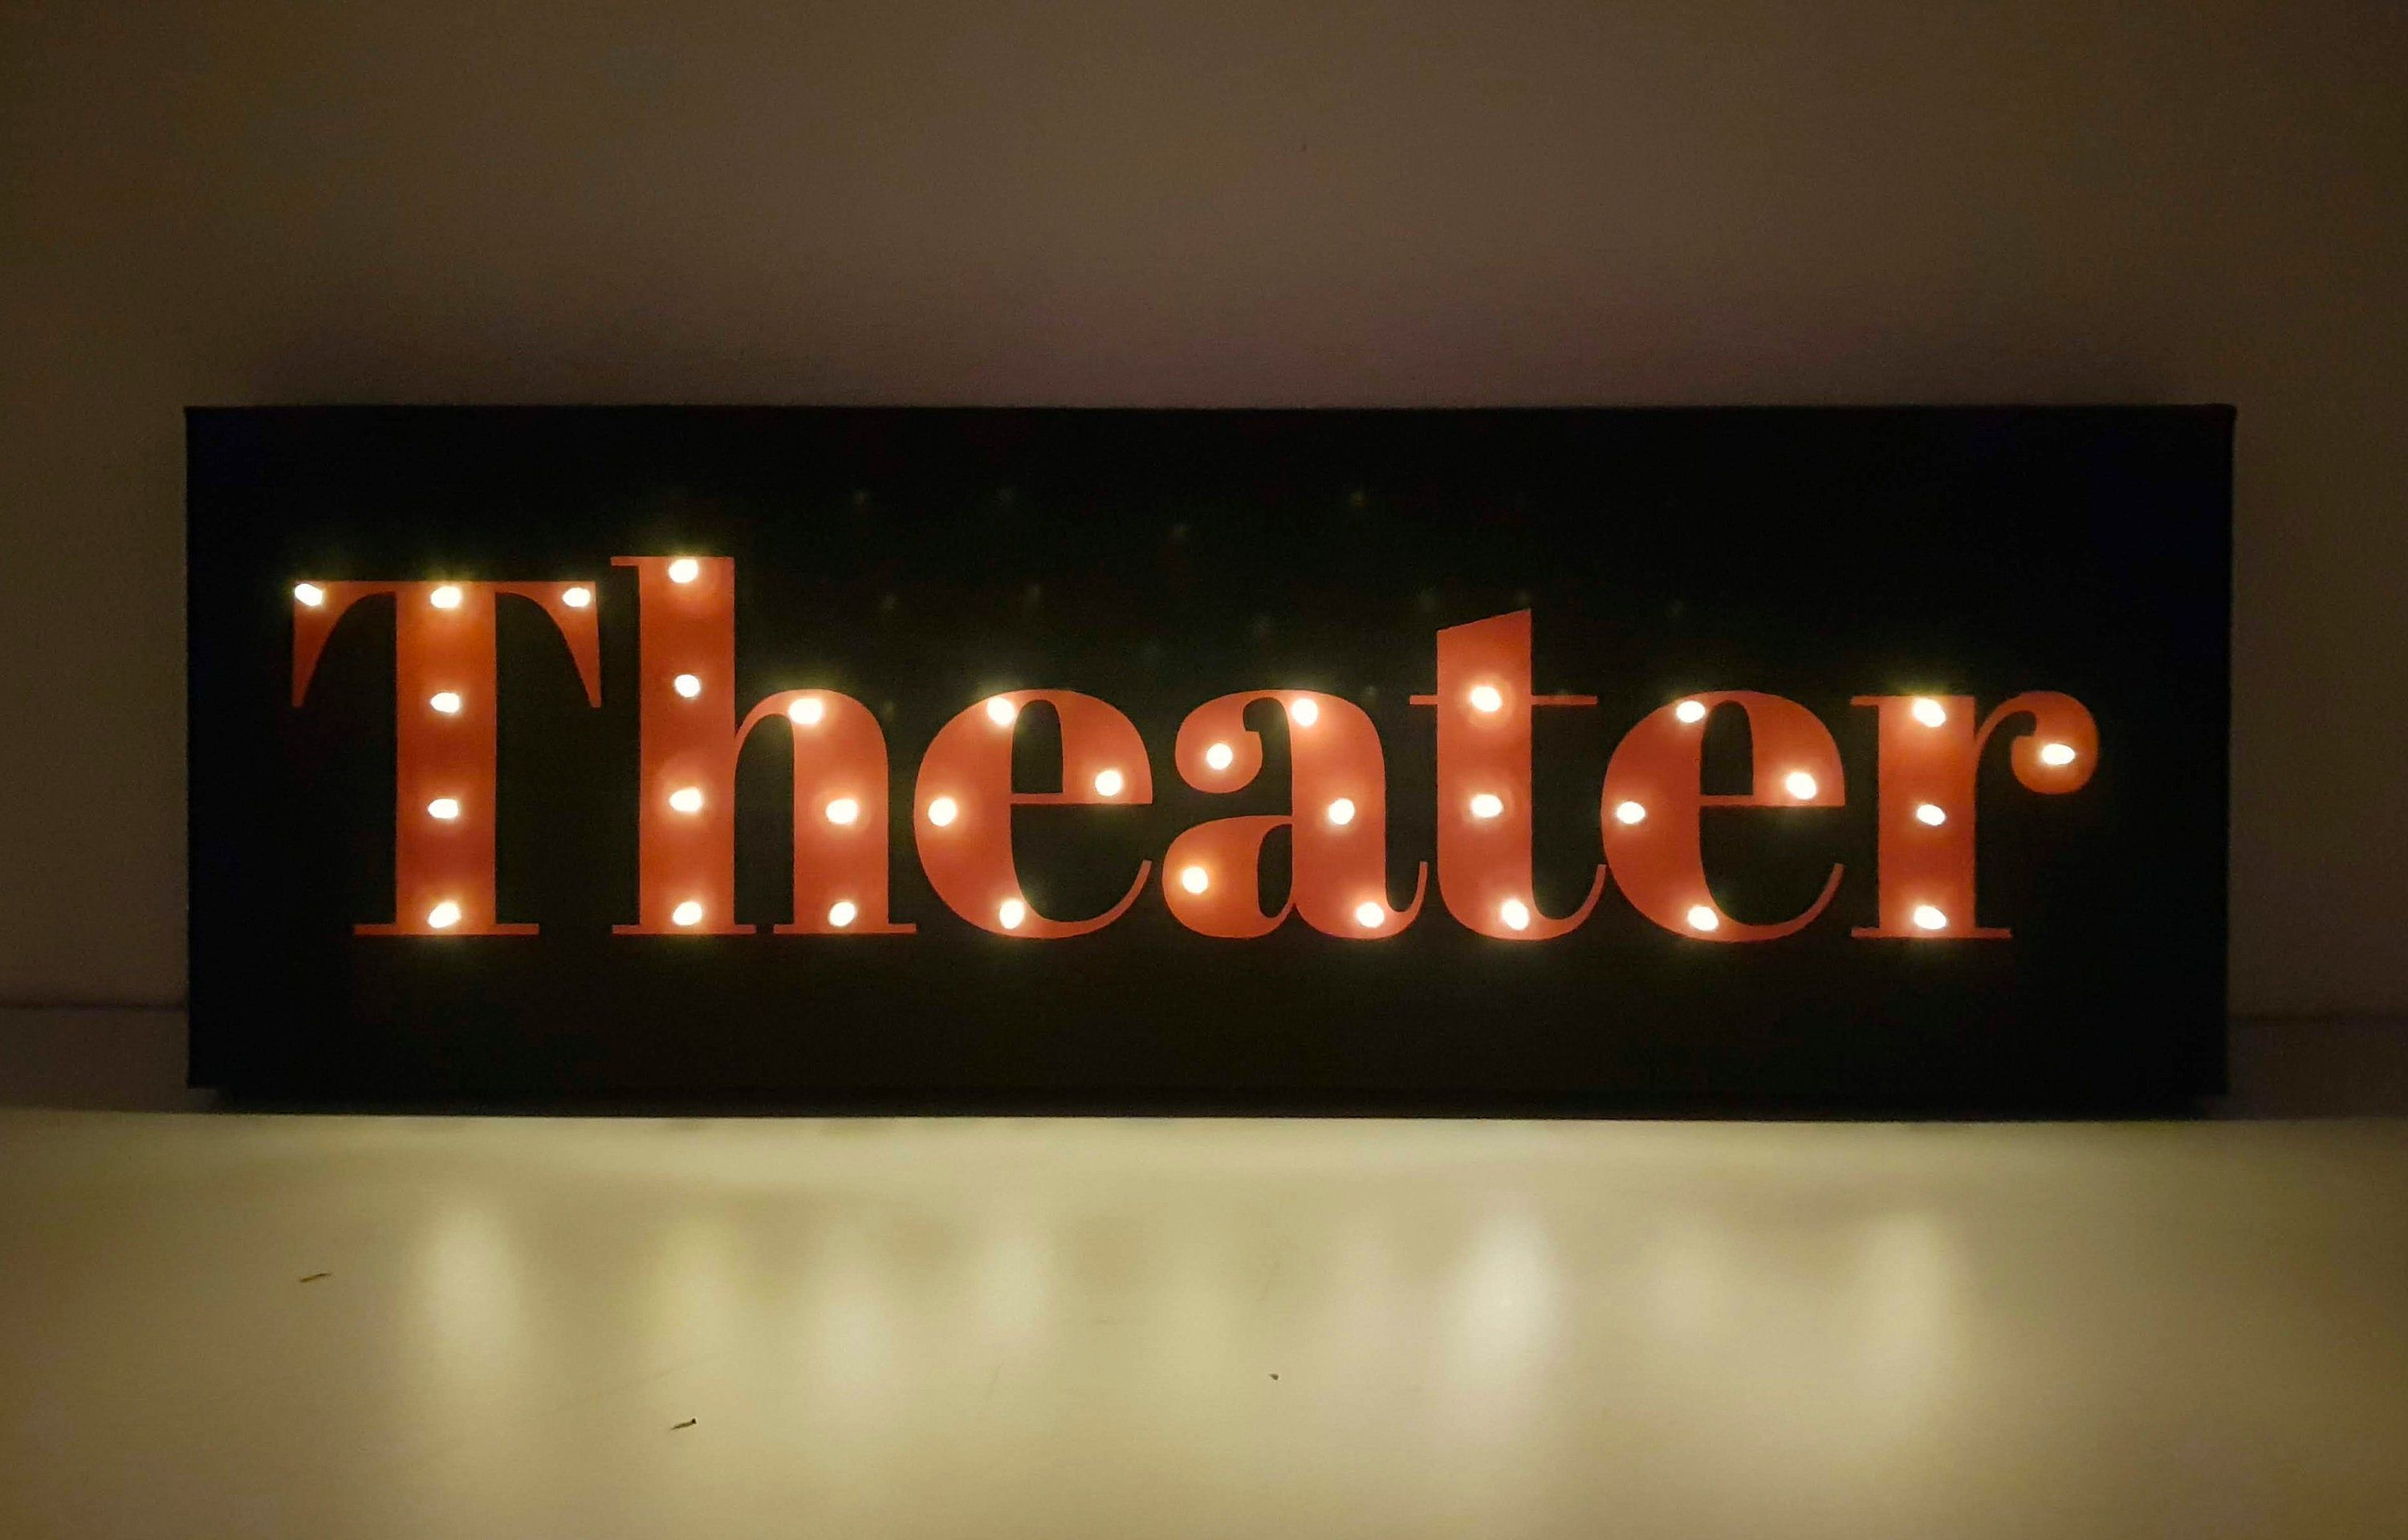 Theater Room Decor, Personalized Theater Sign, Home Theater Decor, Custom sign, Theater Sign, Home Cinema, Marquee light, Light Up Sign, LED - #cinema #CUSTOM #decor #home #LED #light #Marquee #Personalized #room #sign #theater #up